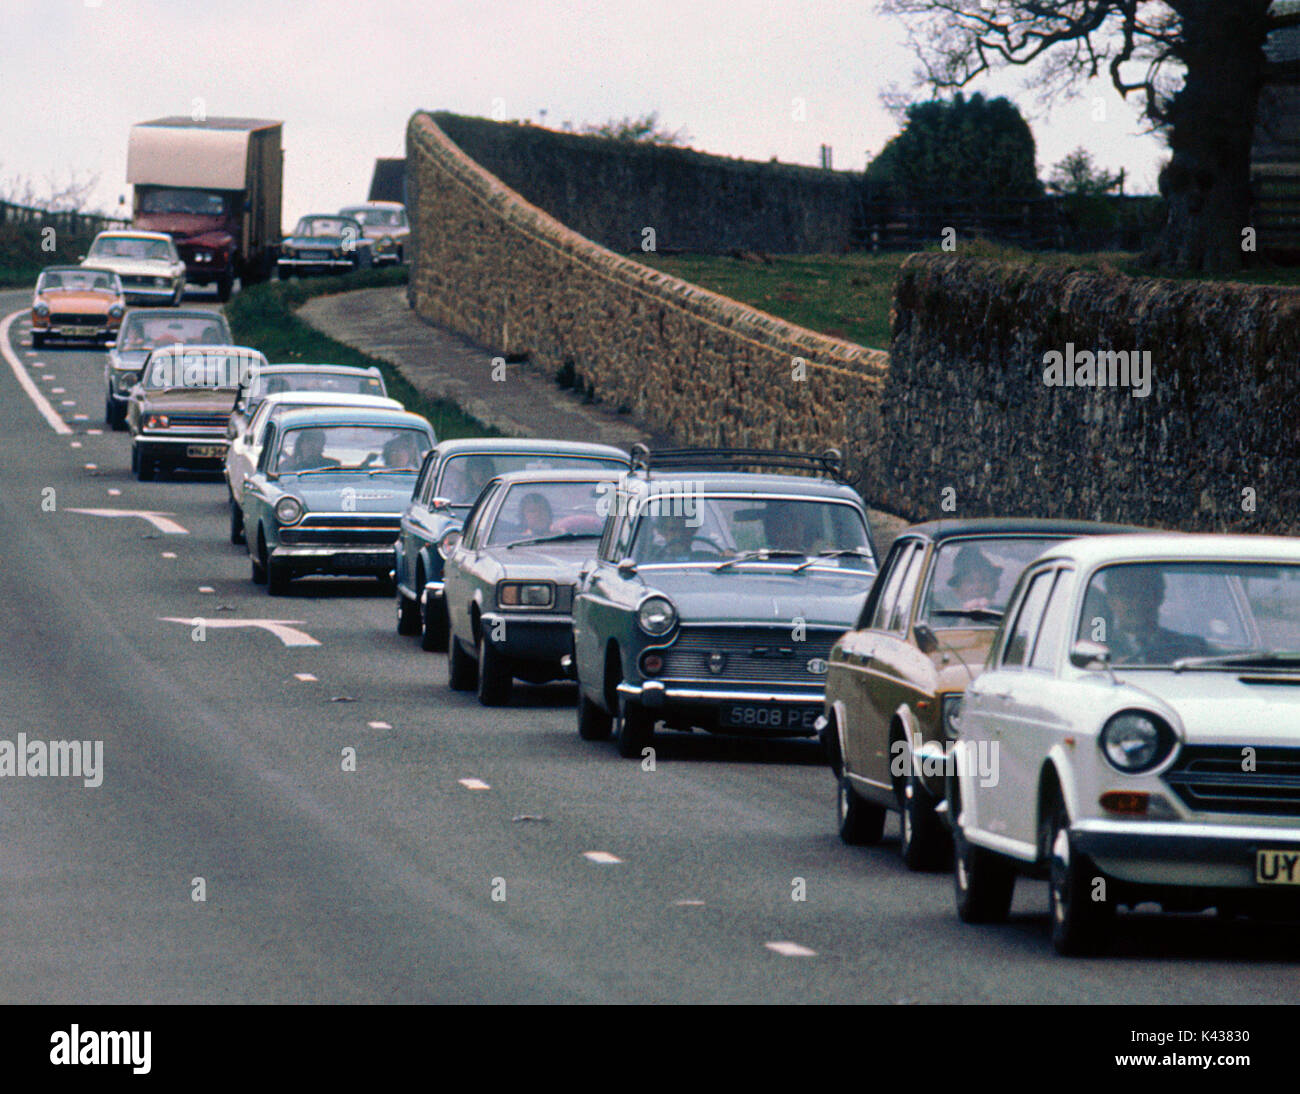 Car Stock Photos: 1970s Cars Stock Photos & 1970s Cars Stock Images